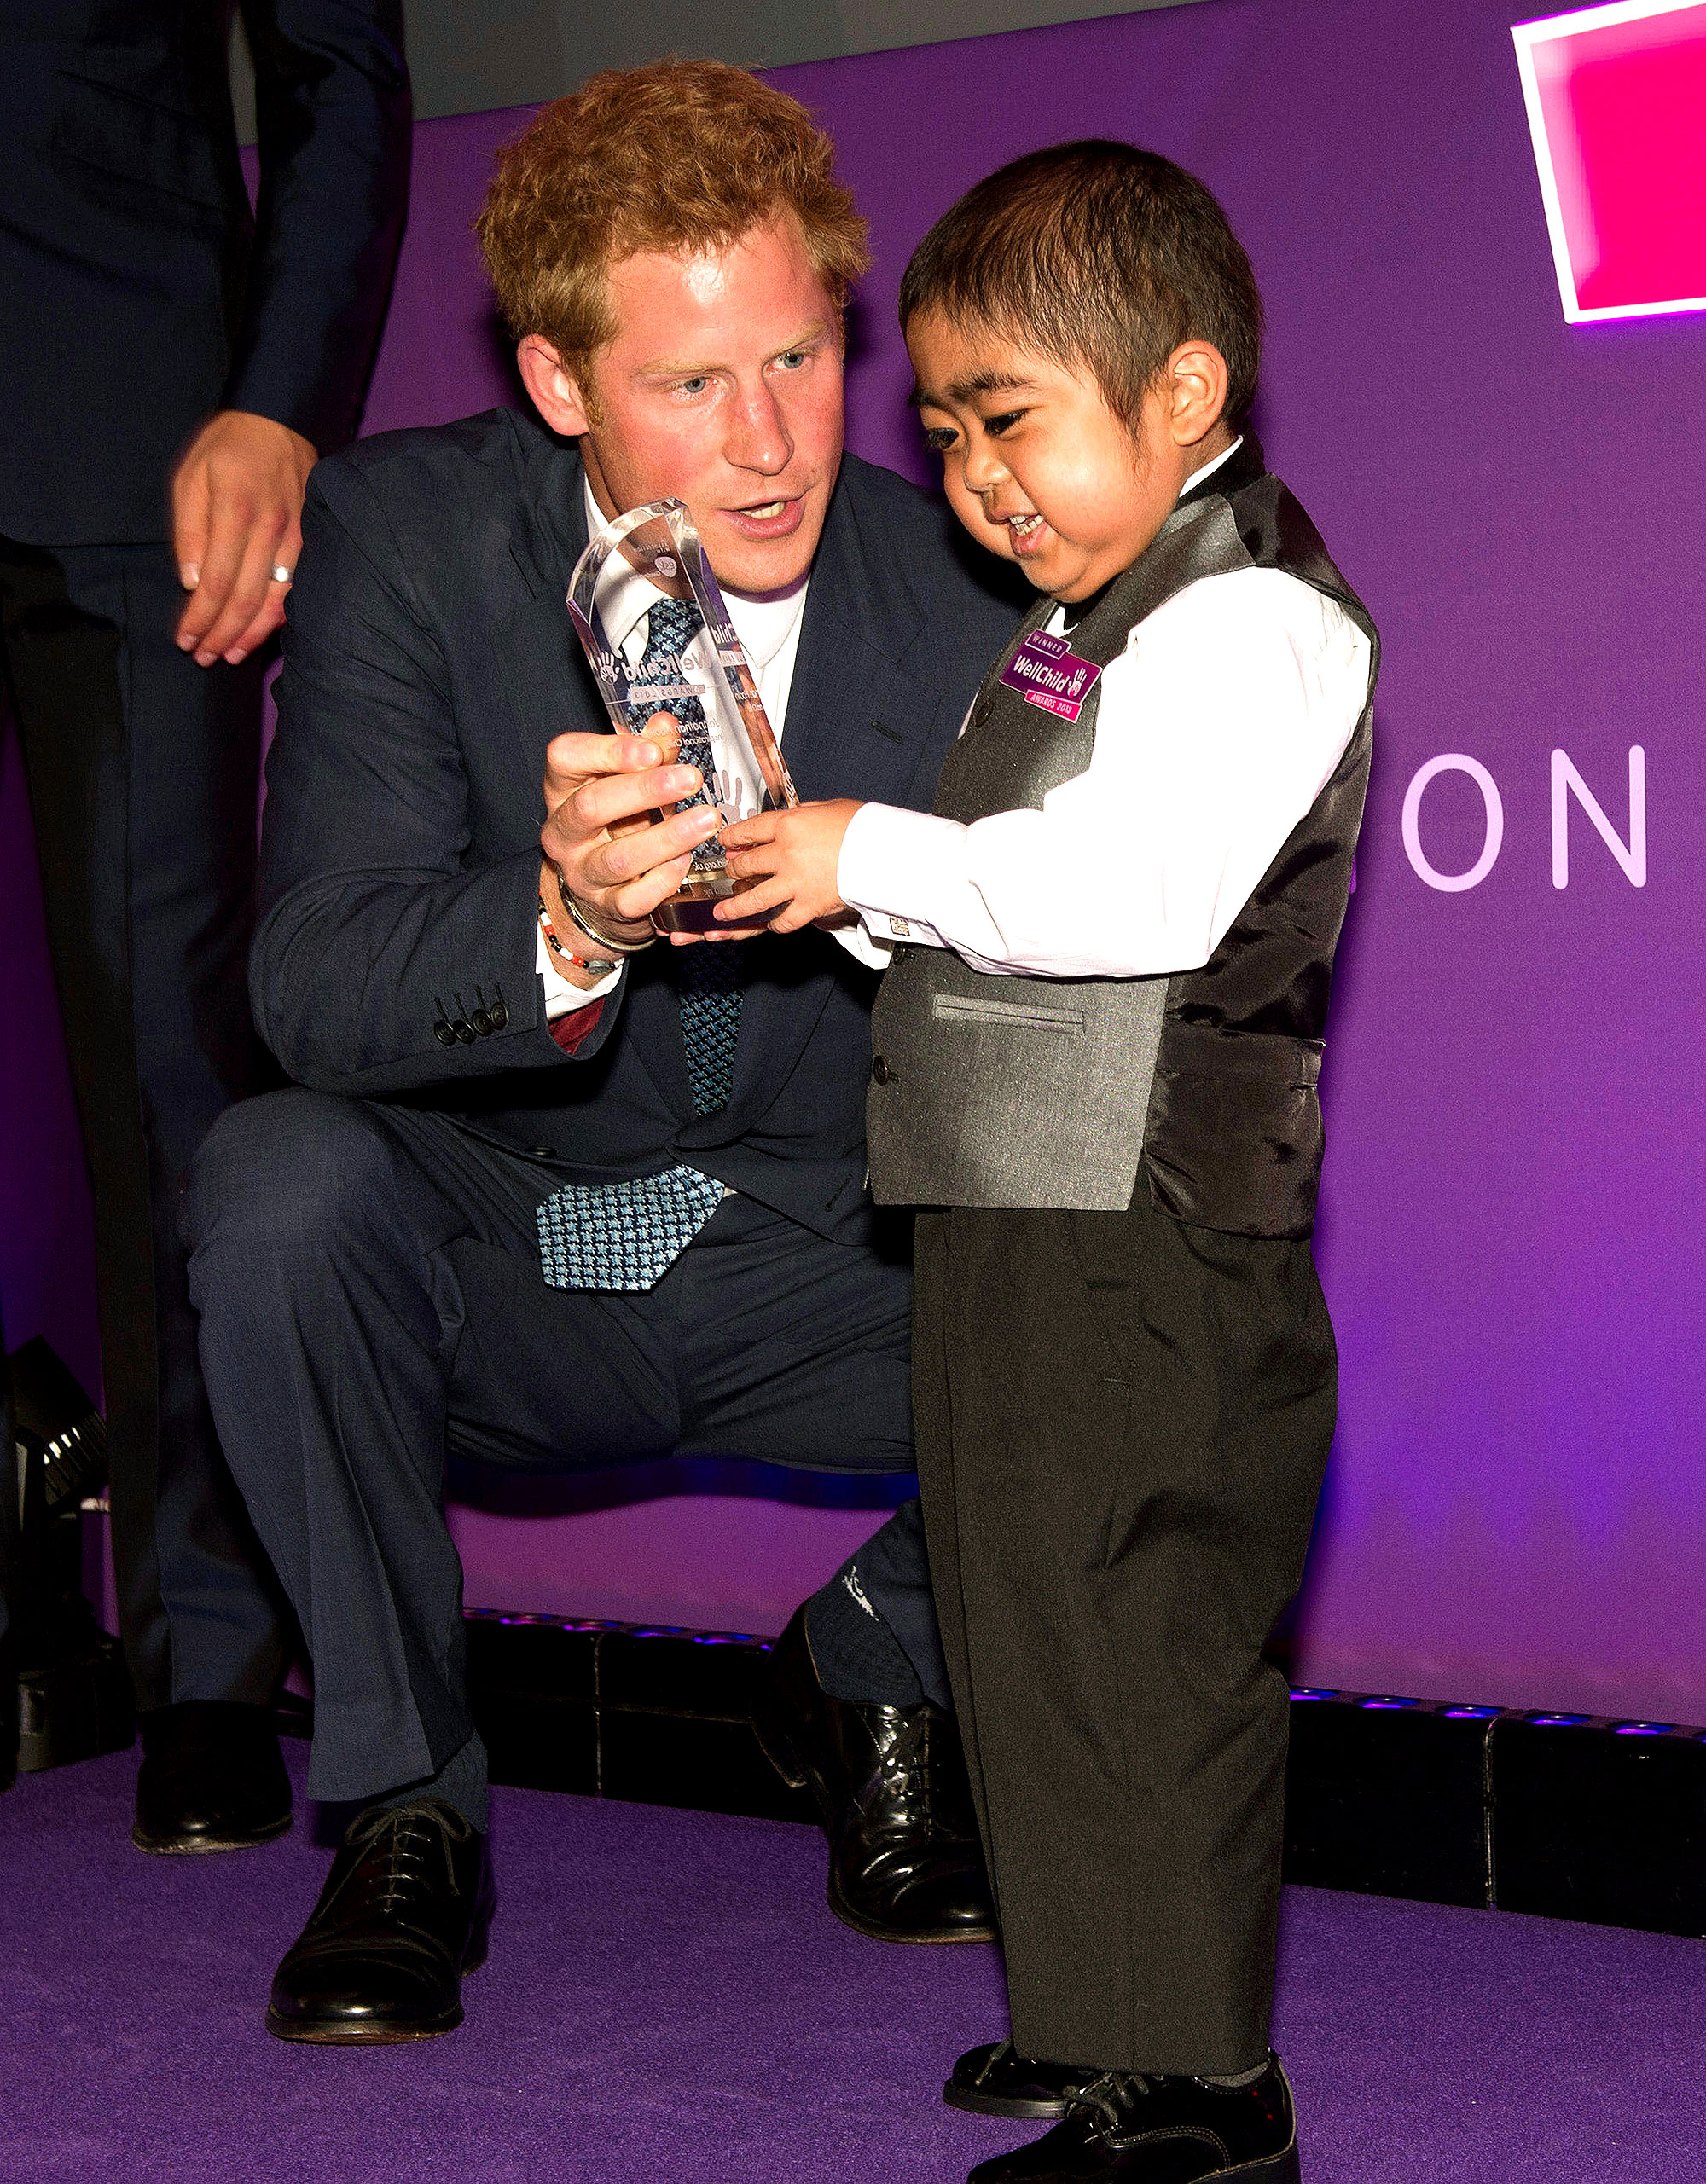 Prince Harry - Prince William's younger brother presented Jonathan He with an award at 2013's 8th Annual WellChild Awards in London. The youngster received the Most Inspirational Child honor for boys ages 3 to 6 due to his bravery in battling a life-threatening illness.